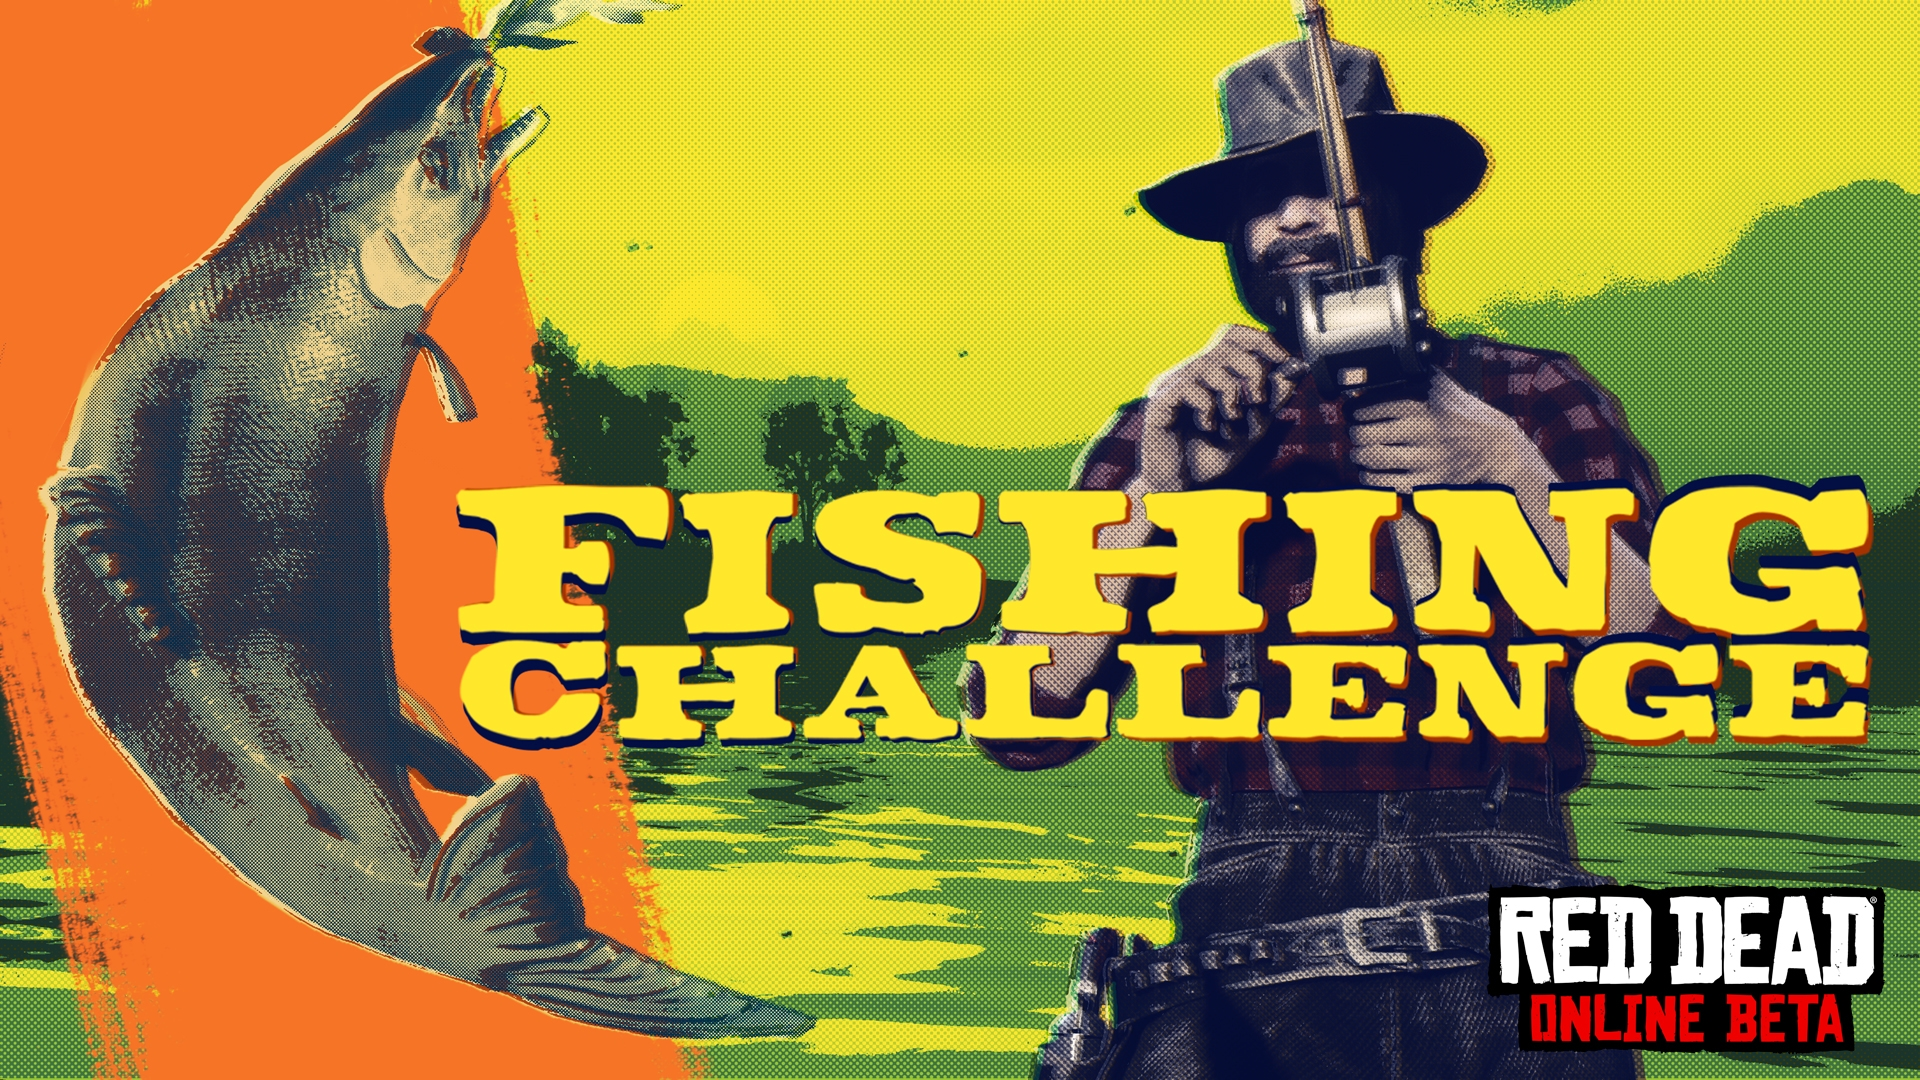 Red Dead Online: Fishing Challenge Free Roam Event & more